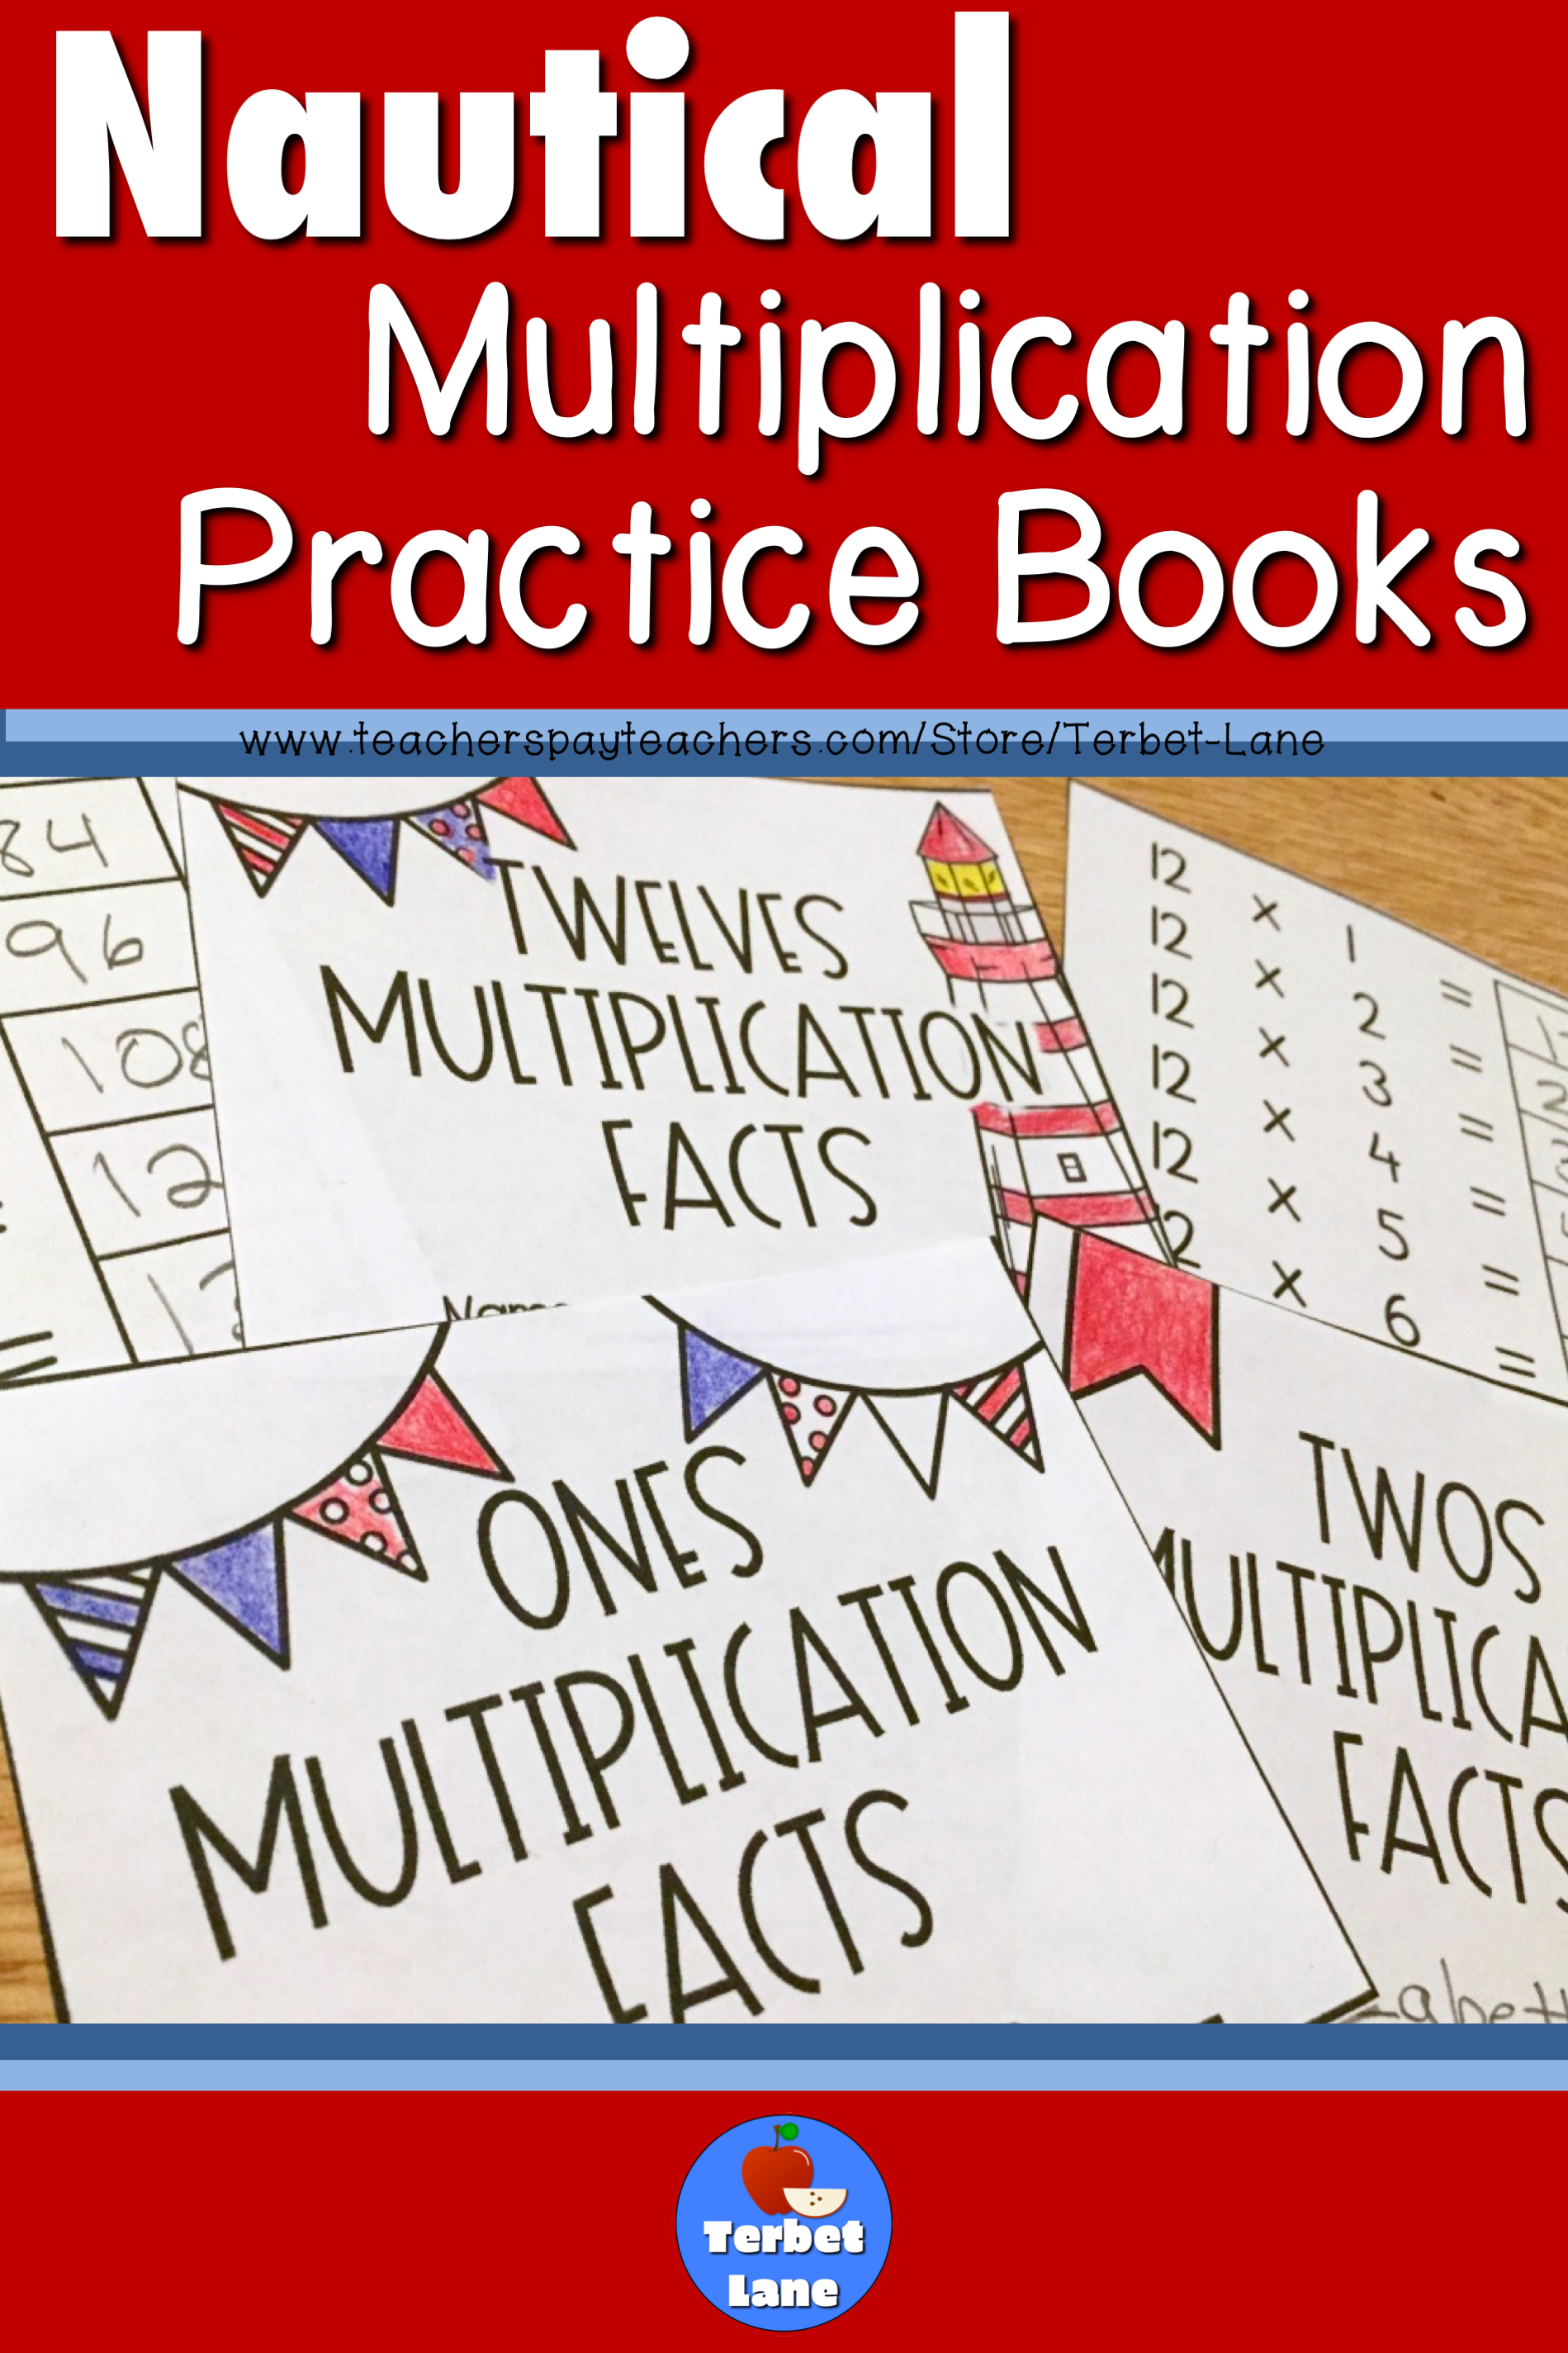 Multiplication Facts Nautical Theme